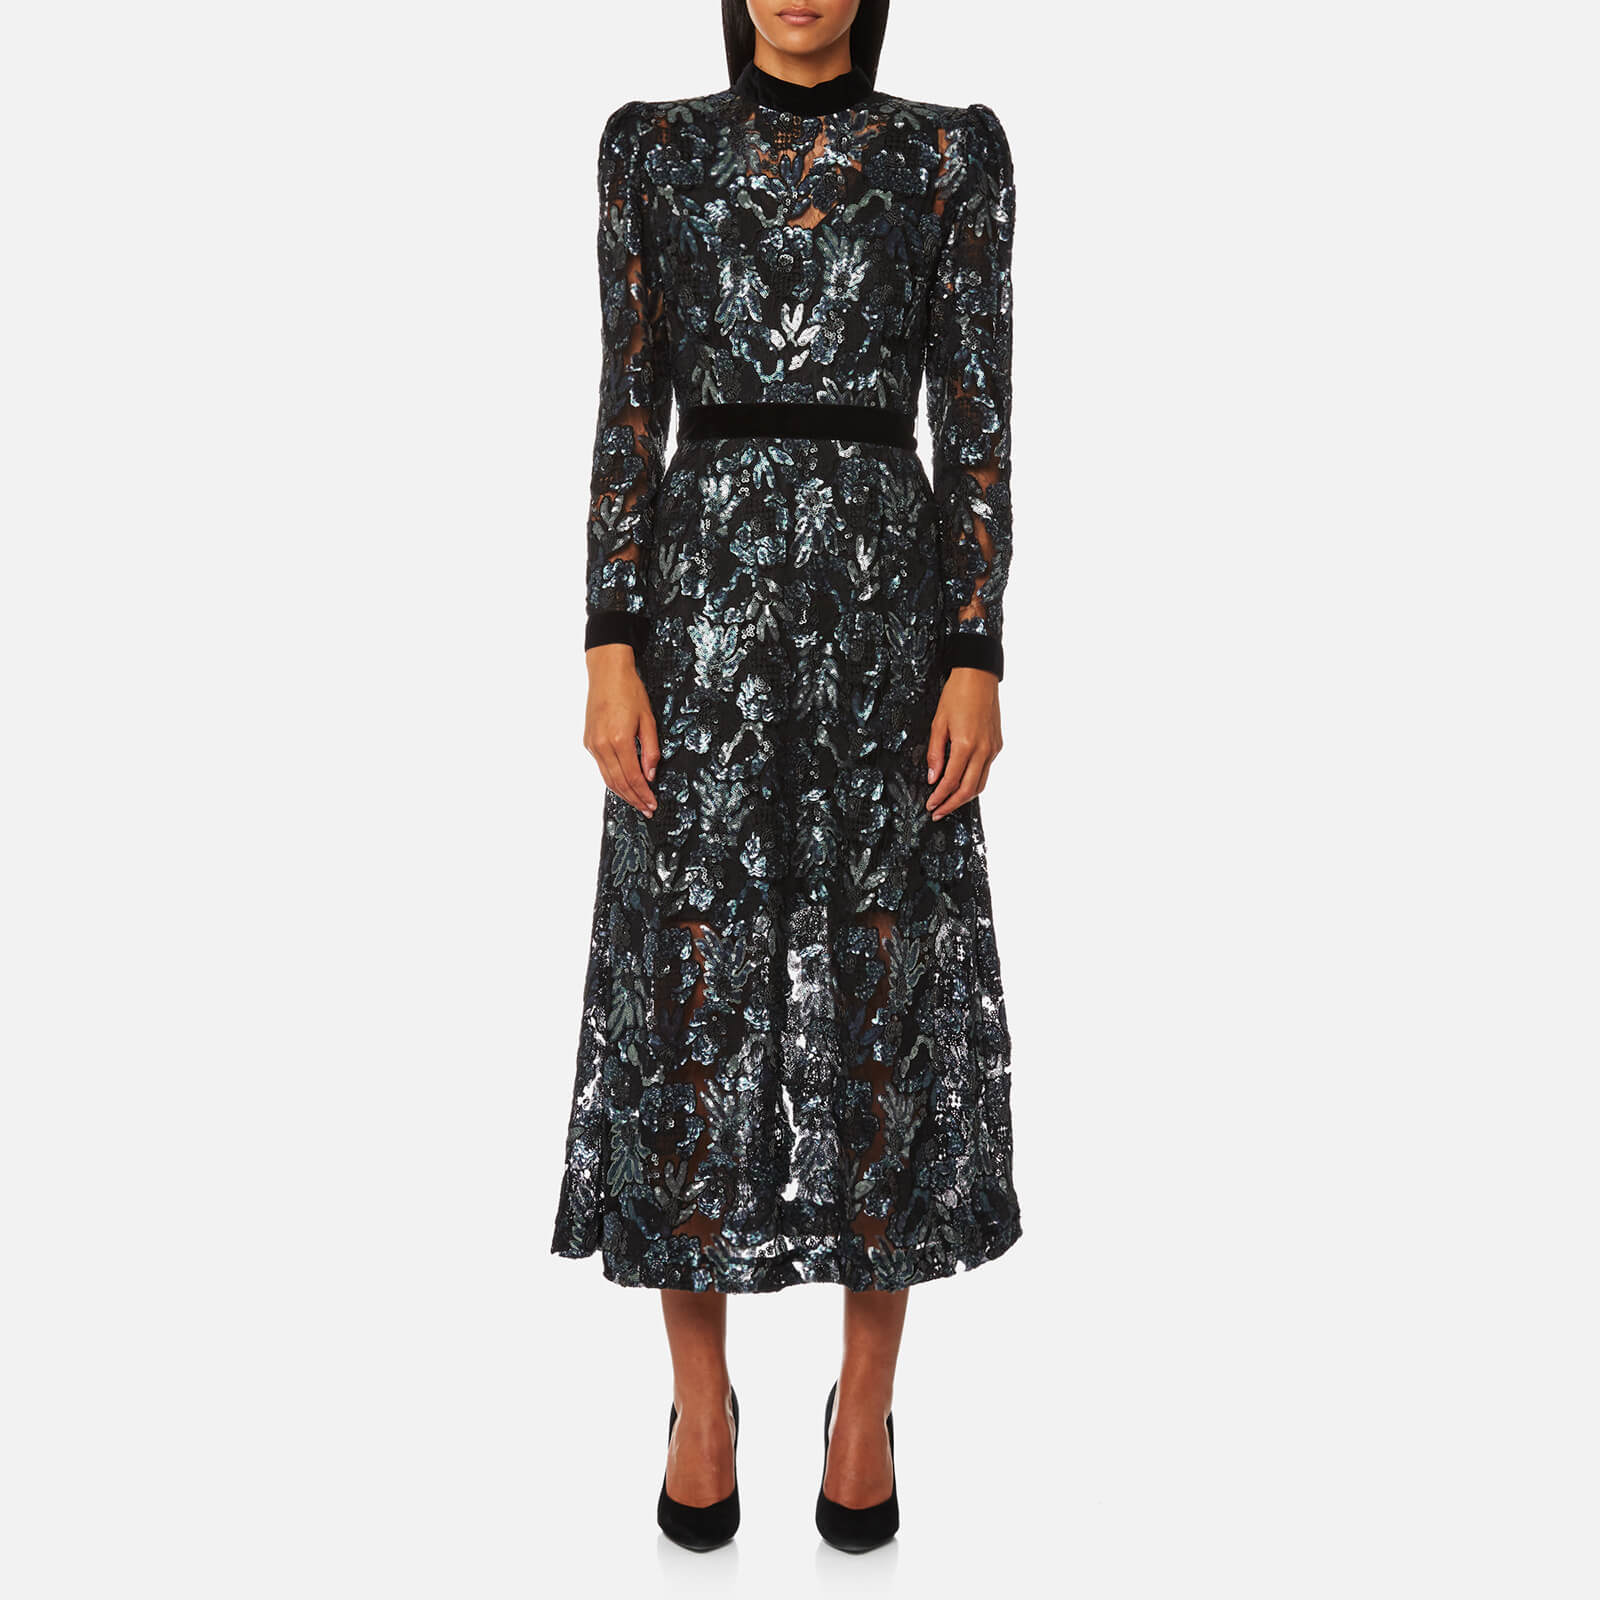 37eb1a7d Perseverance London Women's Floral Multi Sequin Midi Dress - Silver - Free  UK Delivery over £50